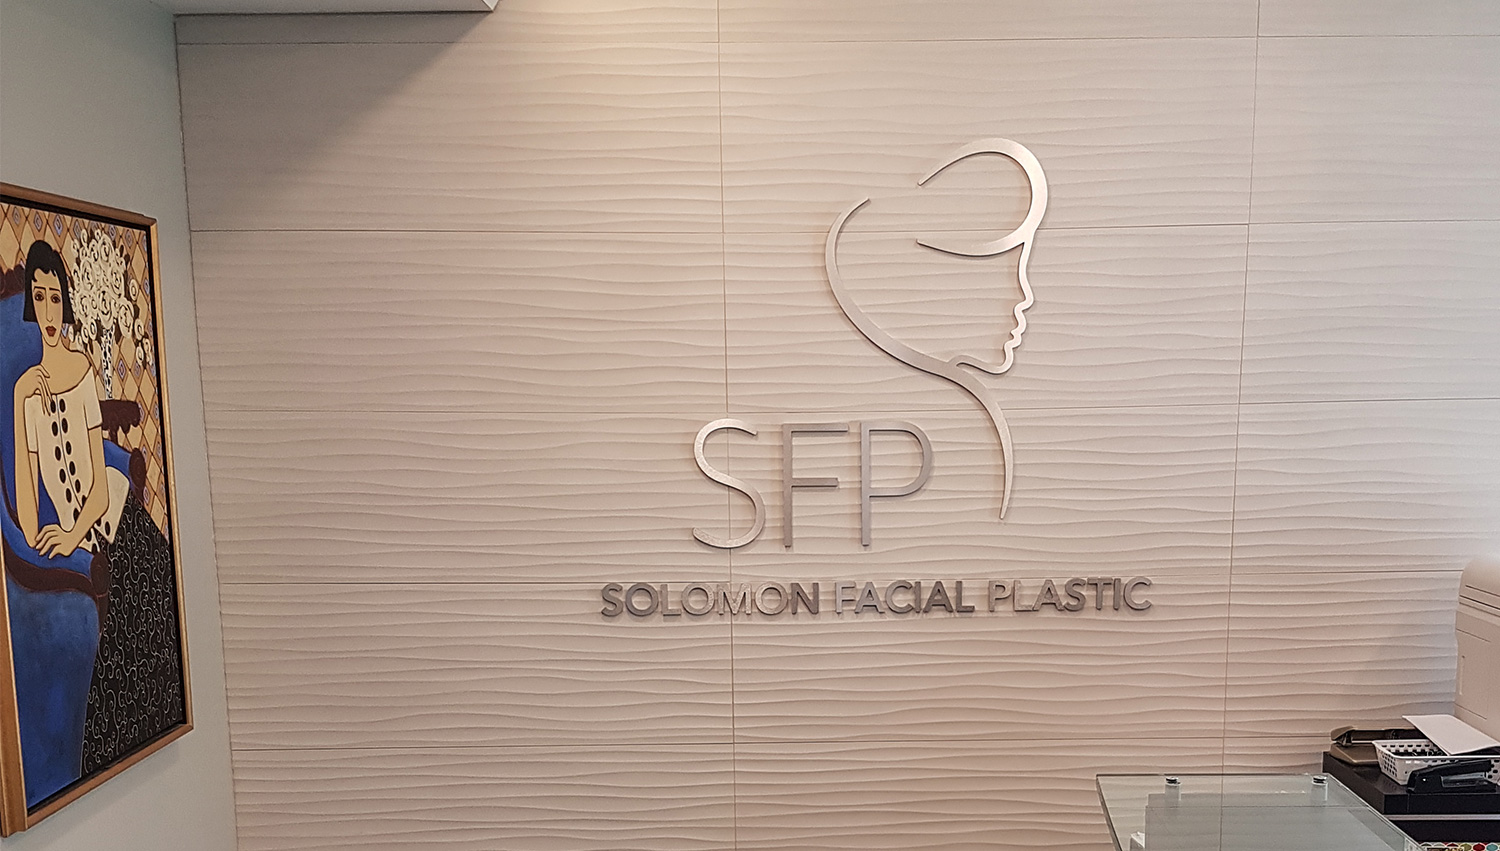 Company Logo signage by sign source solution – toronto, on | company ...